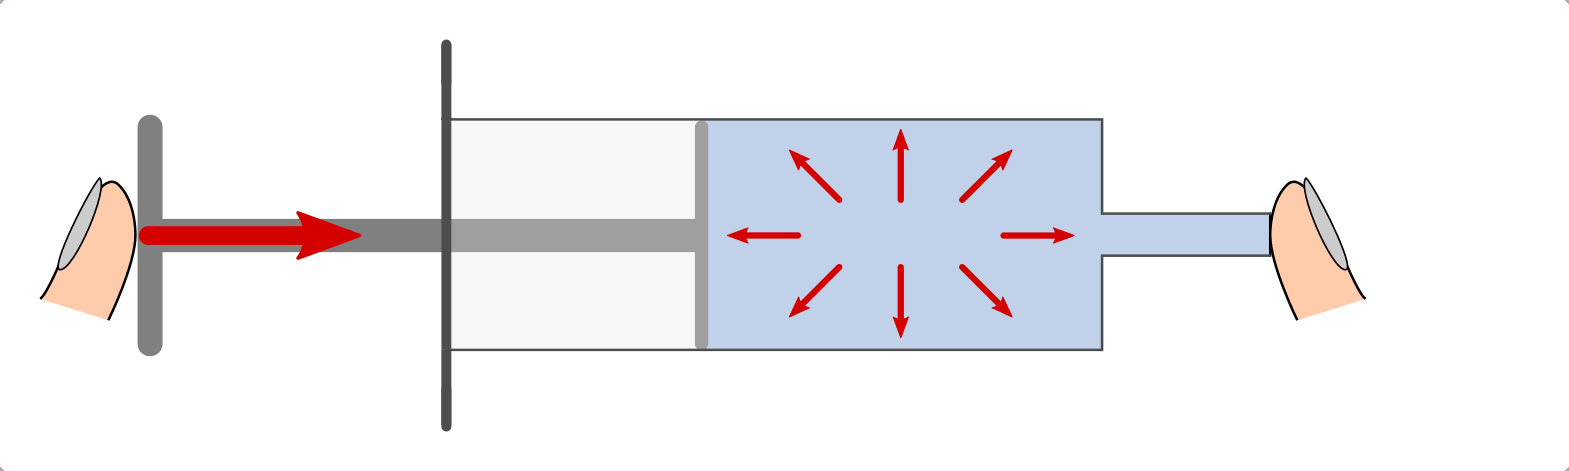 Figure 1: Pressure in liquids using the example of the piston pressure in a syringe (Source: http://grund-wissen.de/physik/mechanik/festkoerper-fluessigkeiten-gase/fluessigkeiten.html)